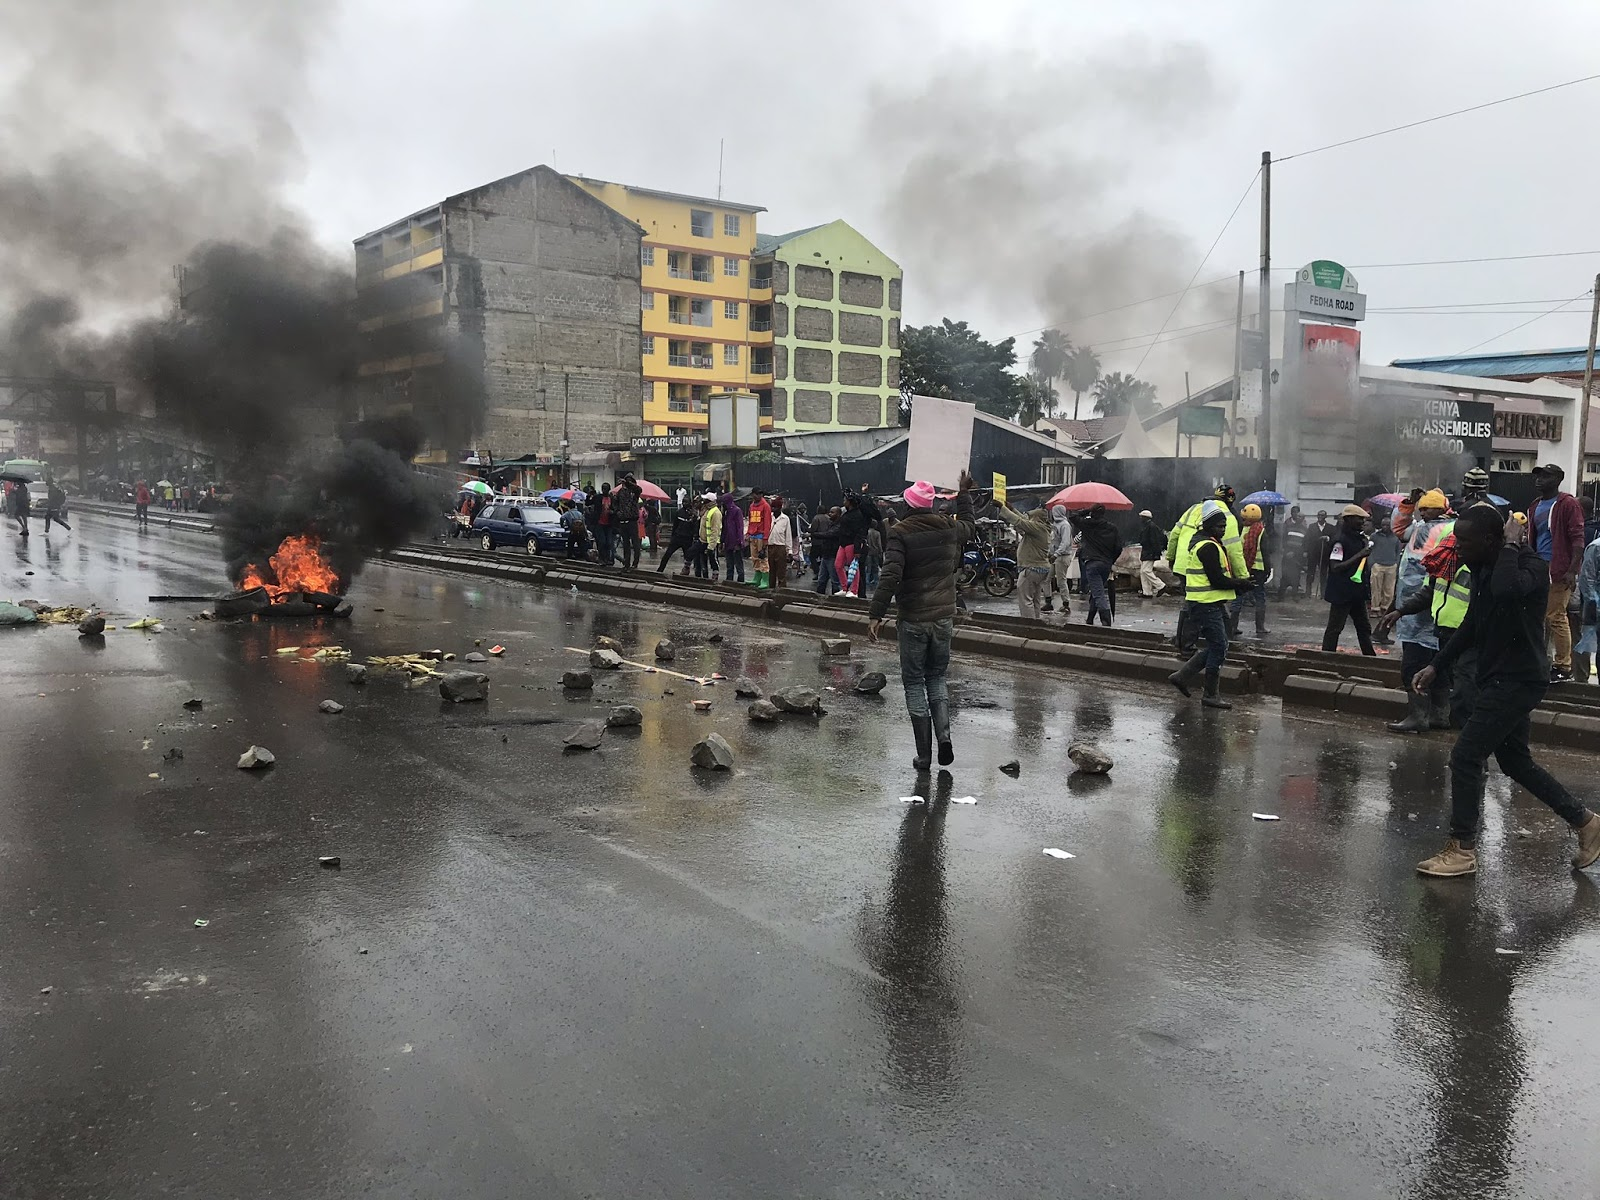 Sonko supporters protests for for the release of city boss mike sonko